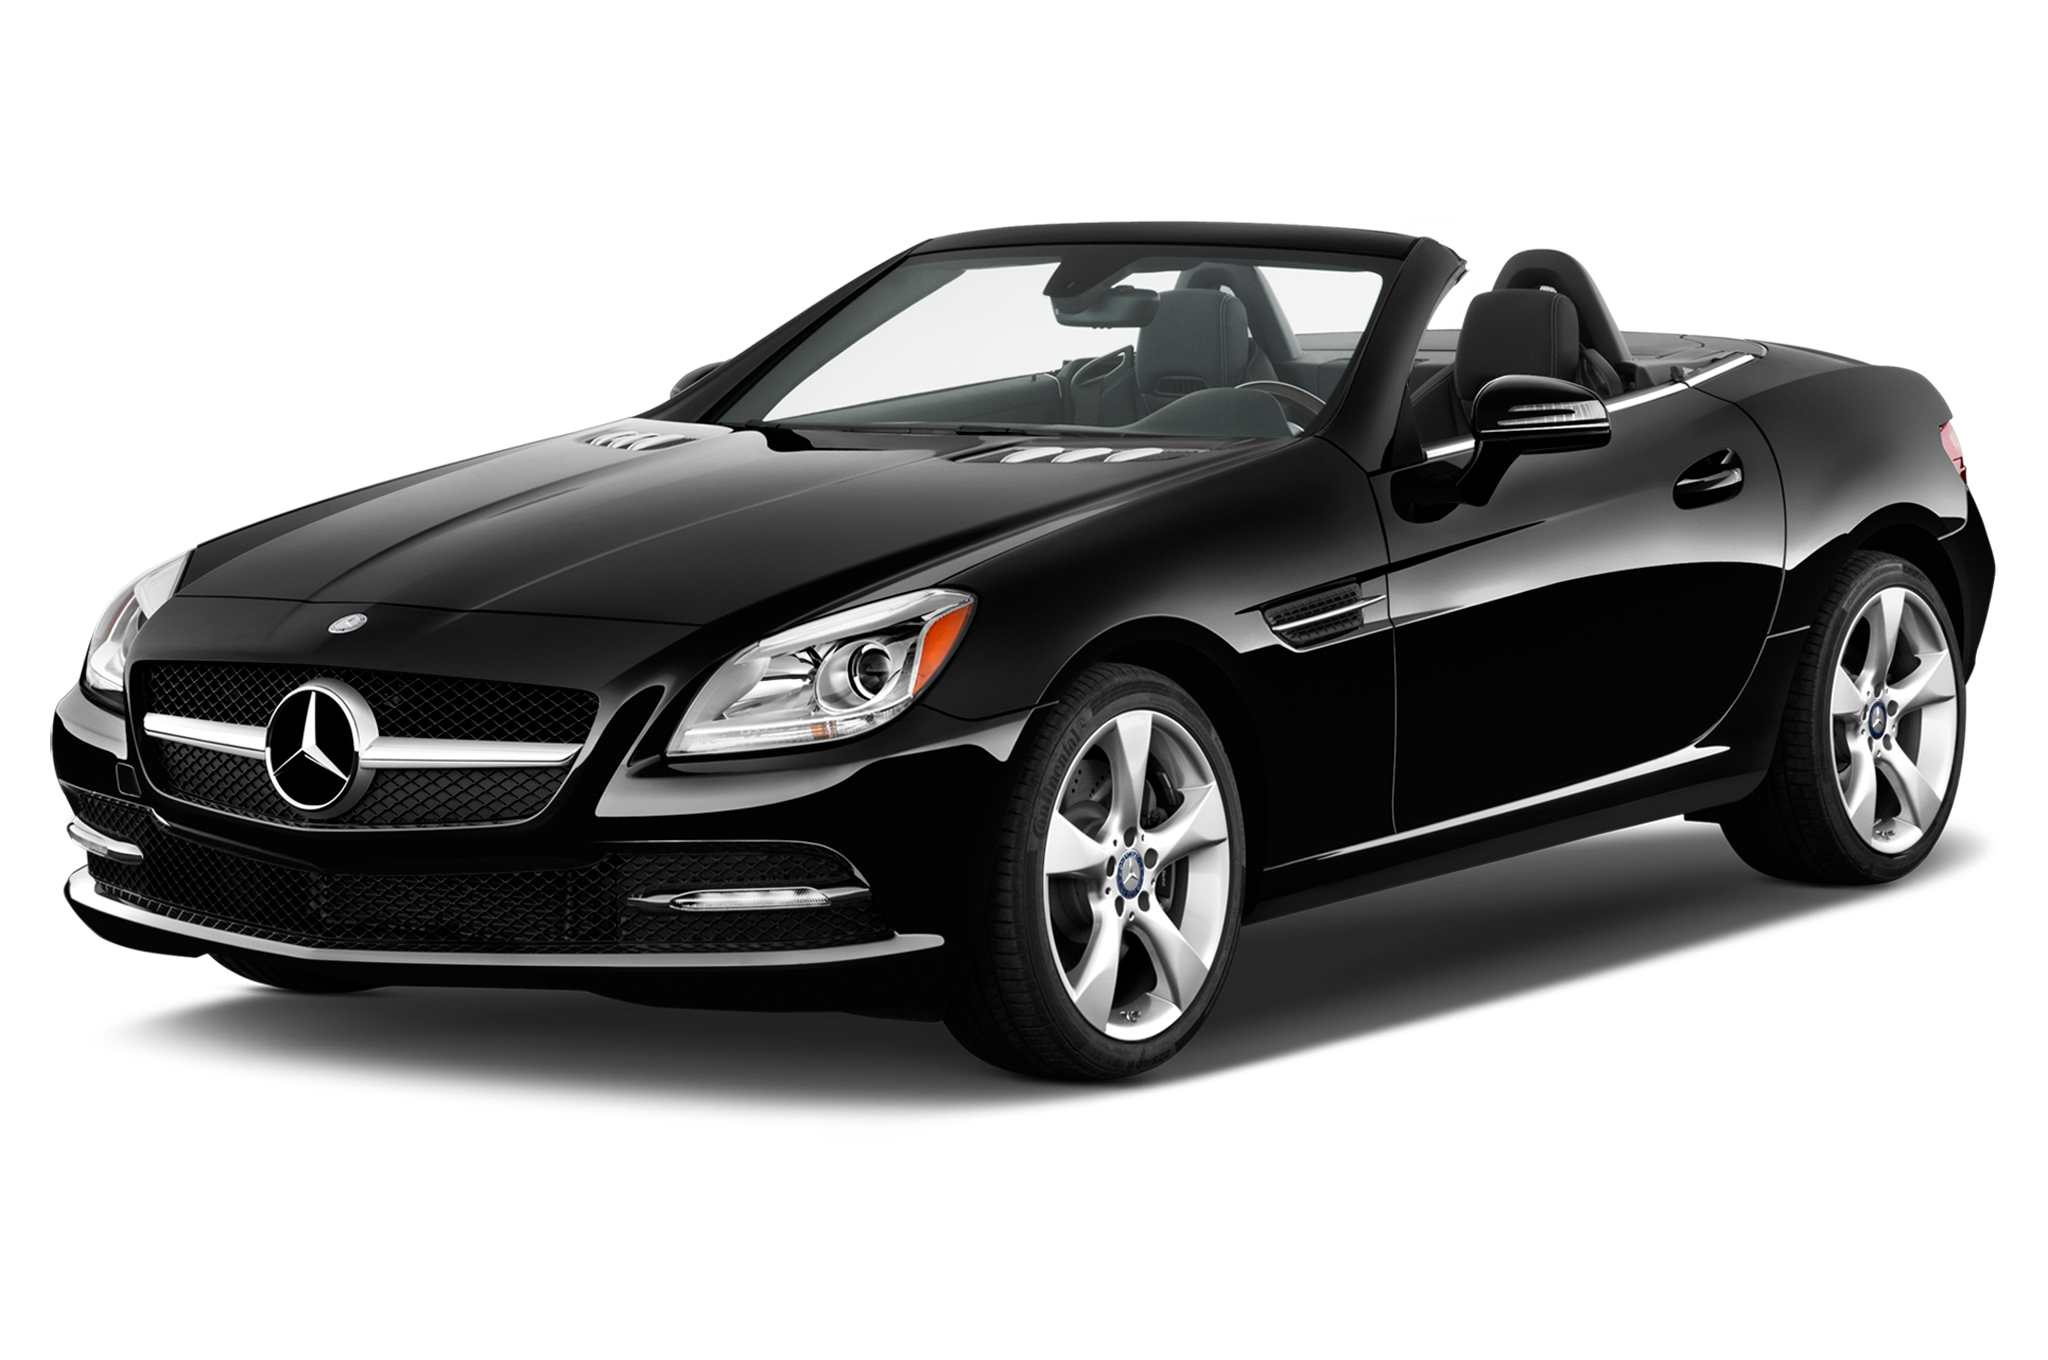 2012 mercedes benz slk350 editor 39 s notebook automobile for 2012 mercedes benz slk350